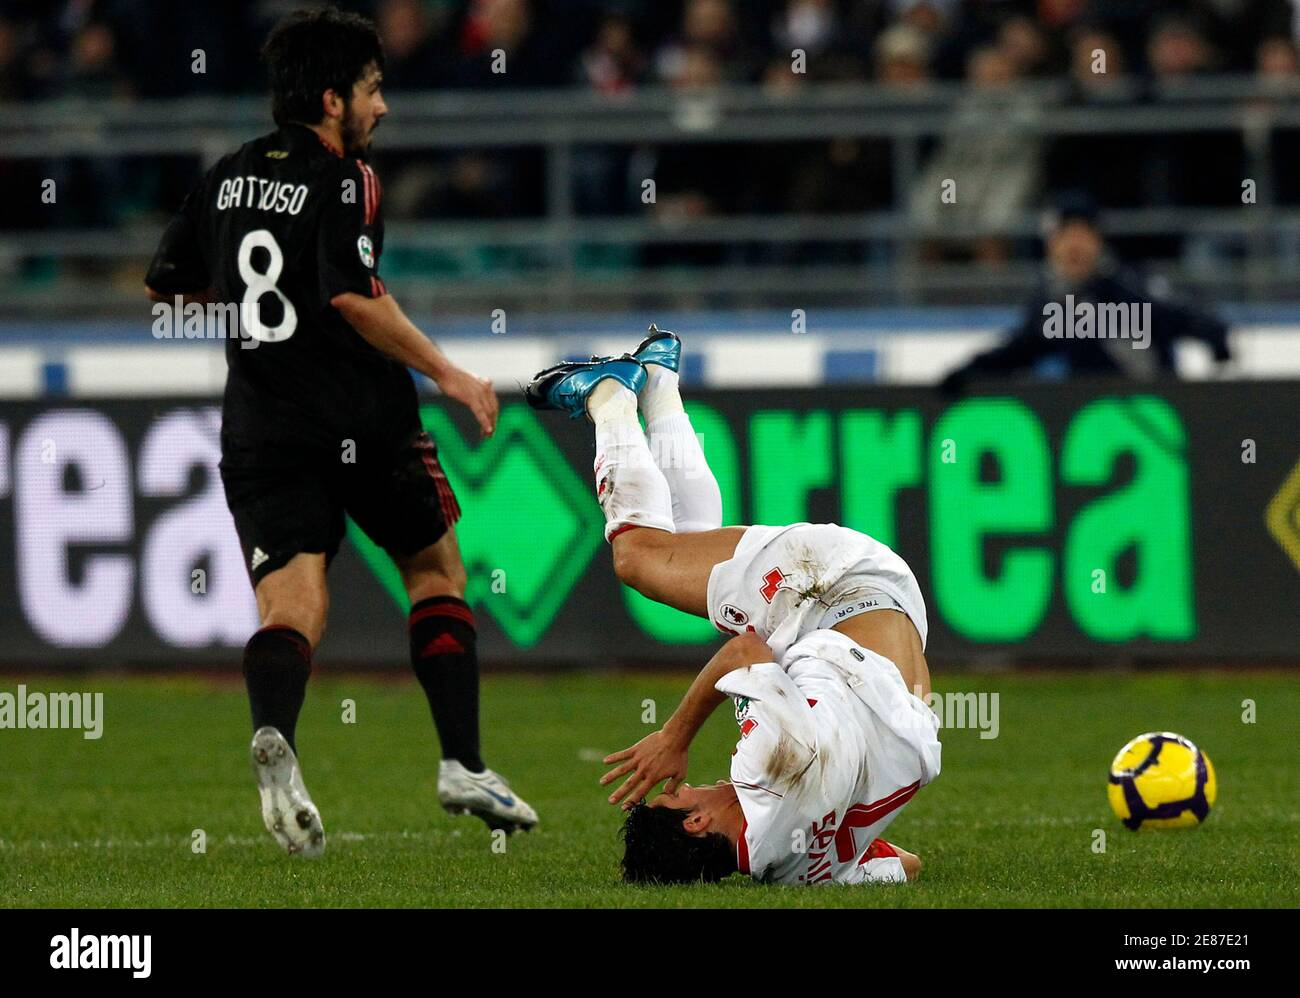 Bari's Emanuel Benito Rivas (R) flies down as  Gennaro Gattuso (C) of AC Milan passes near during their Serie A soccer match at the San Nicola stadium in Bari February 21, 2010.  REUTERS/Alessandro Bianchi   (ITALY - Tags: SPORT SOCCER) Stock Photo